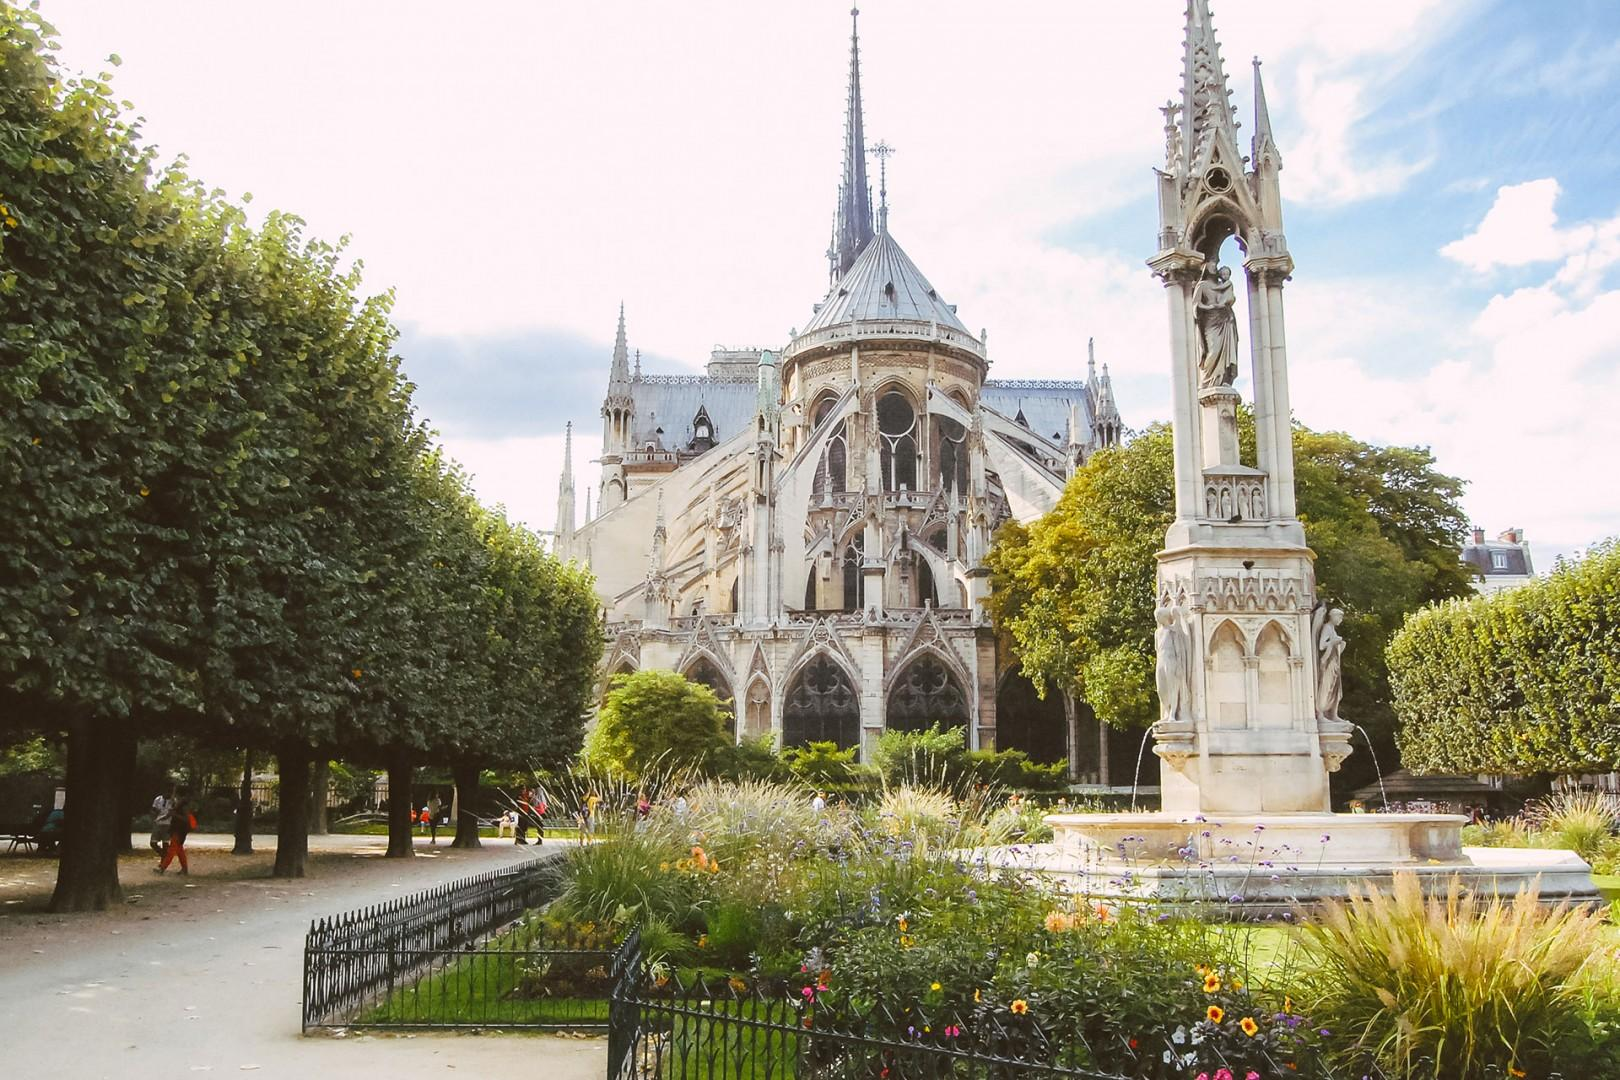 Walk over to the gardens of the Notre-Dame Cathedral.